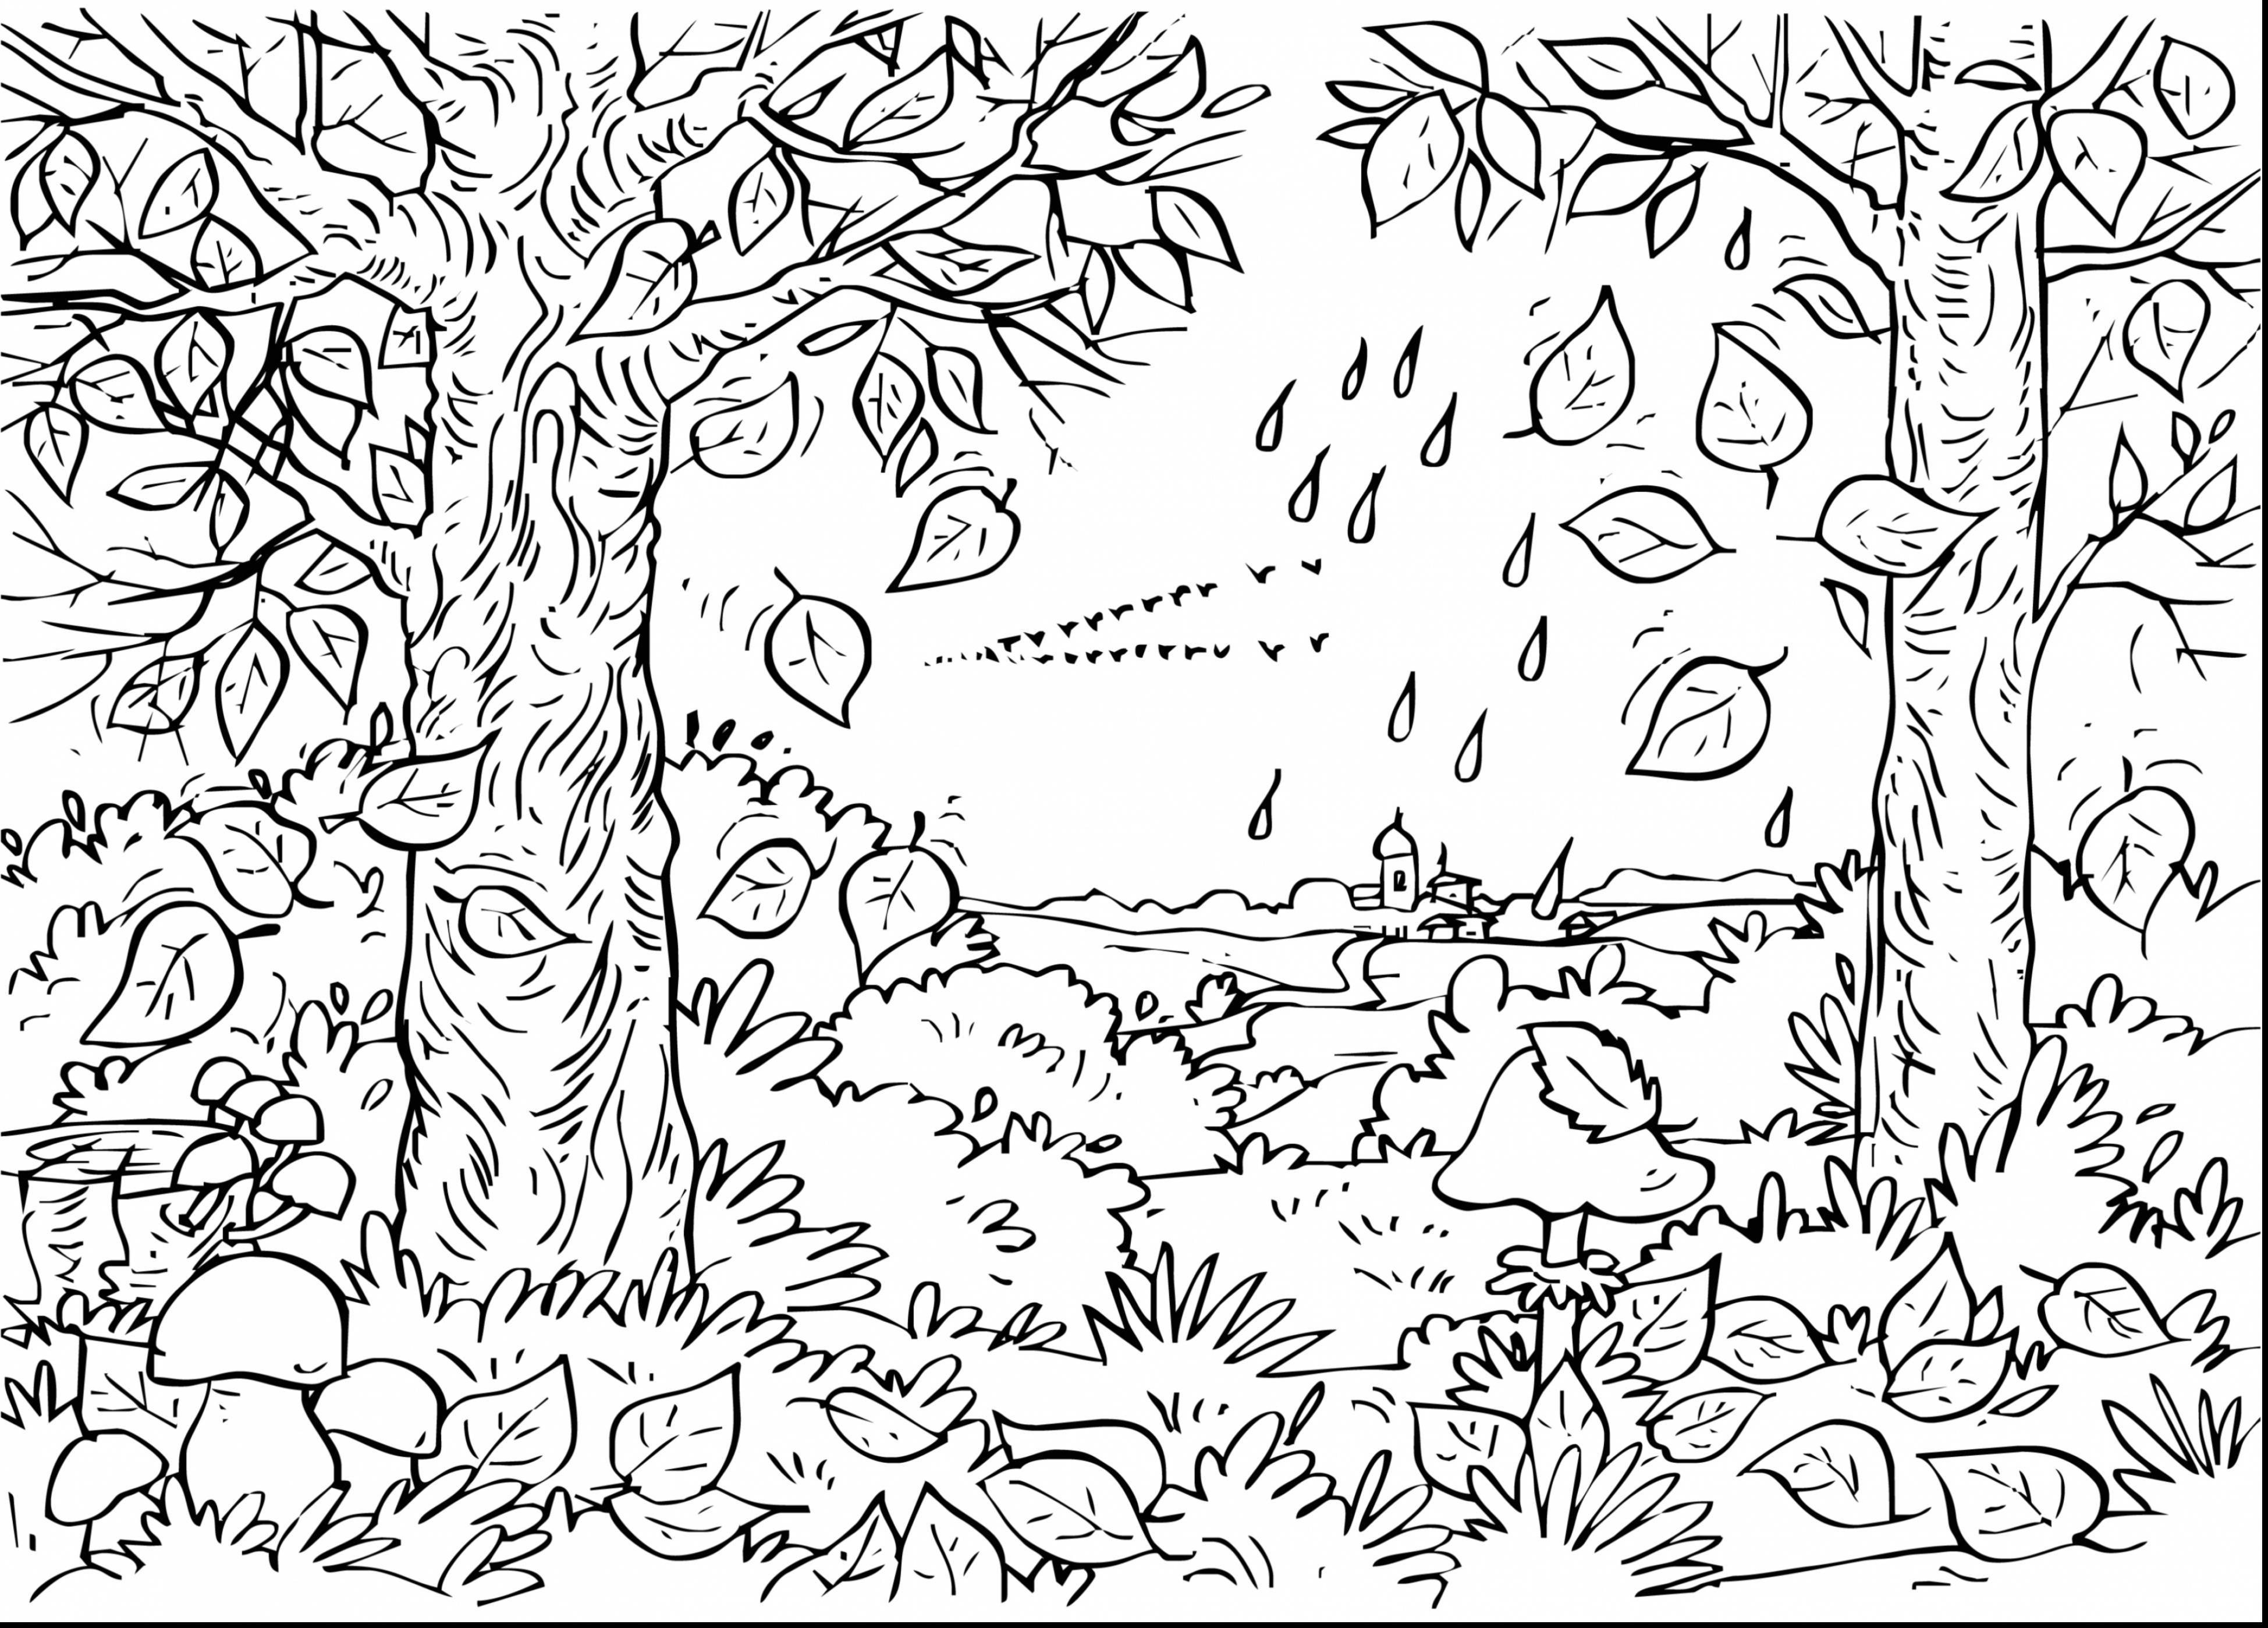 Printable Landscape Coloring Pages For Adults 2018 | Printable